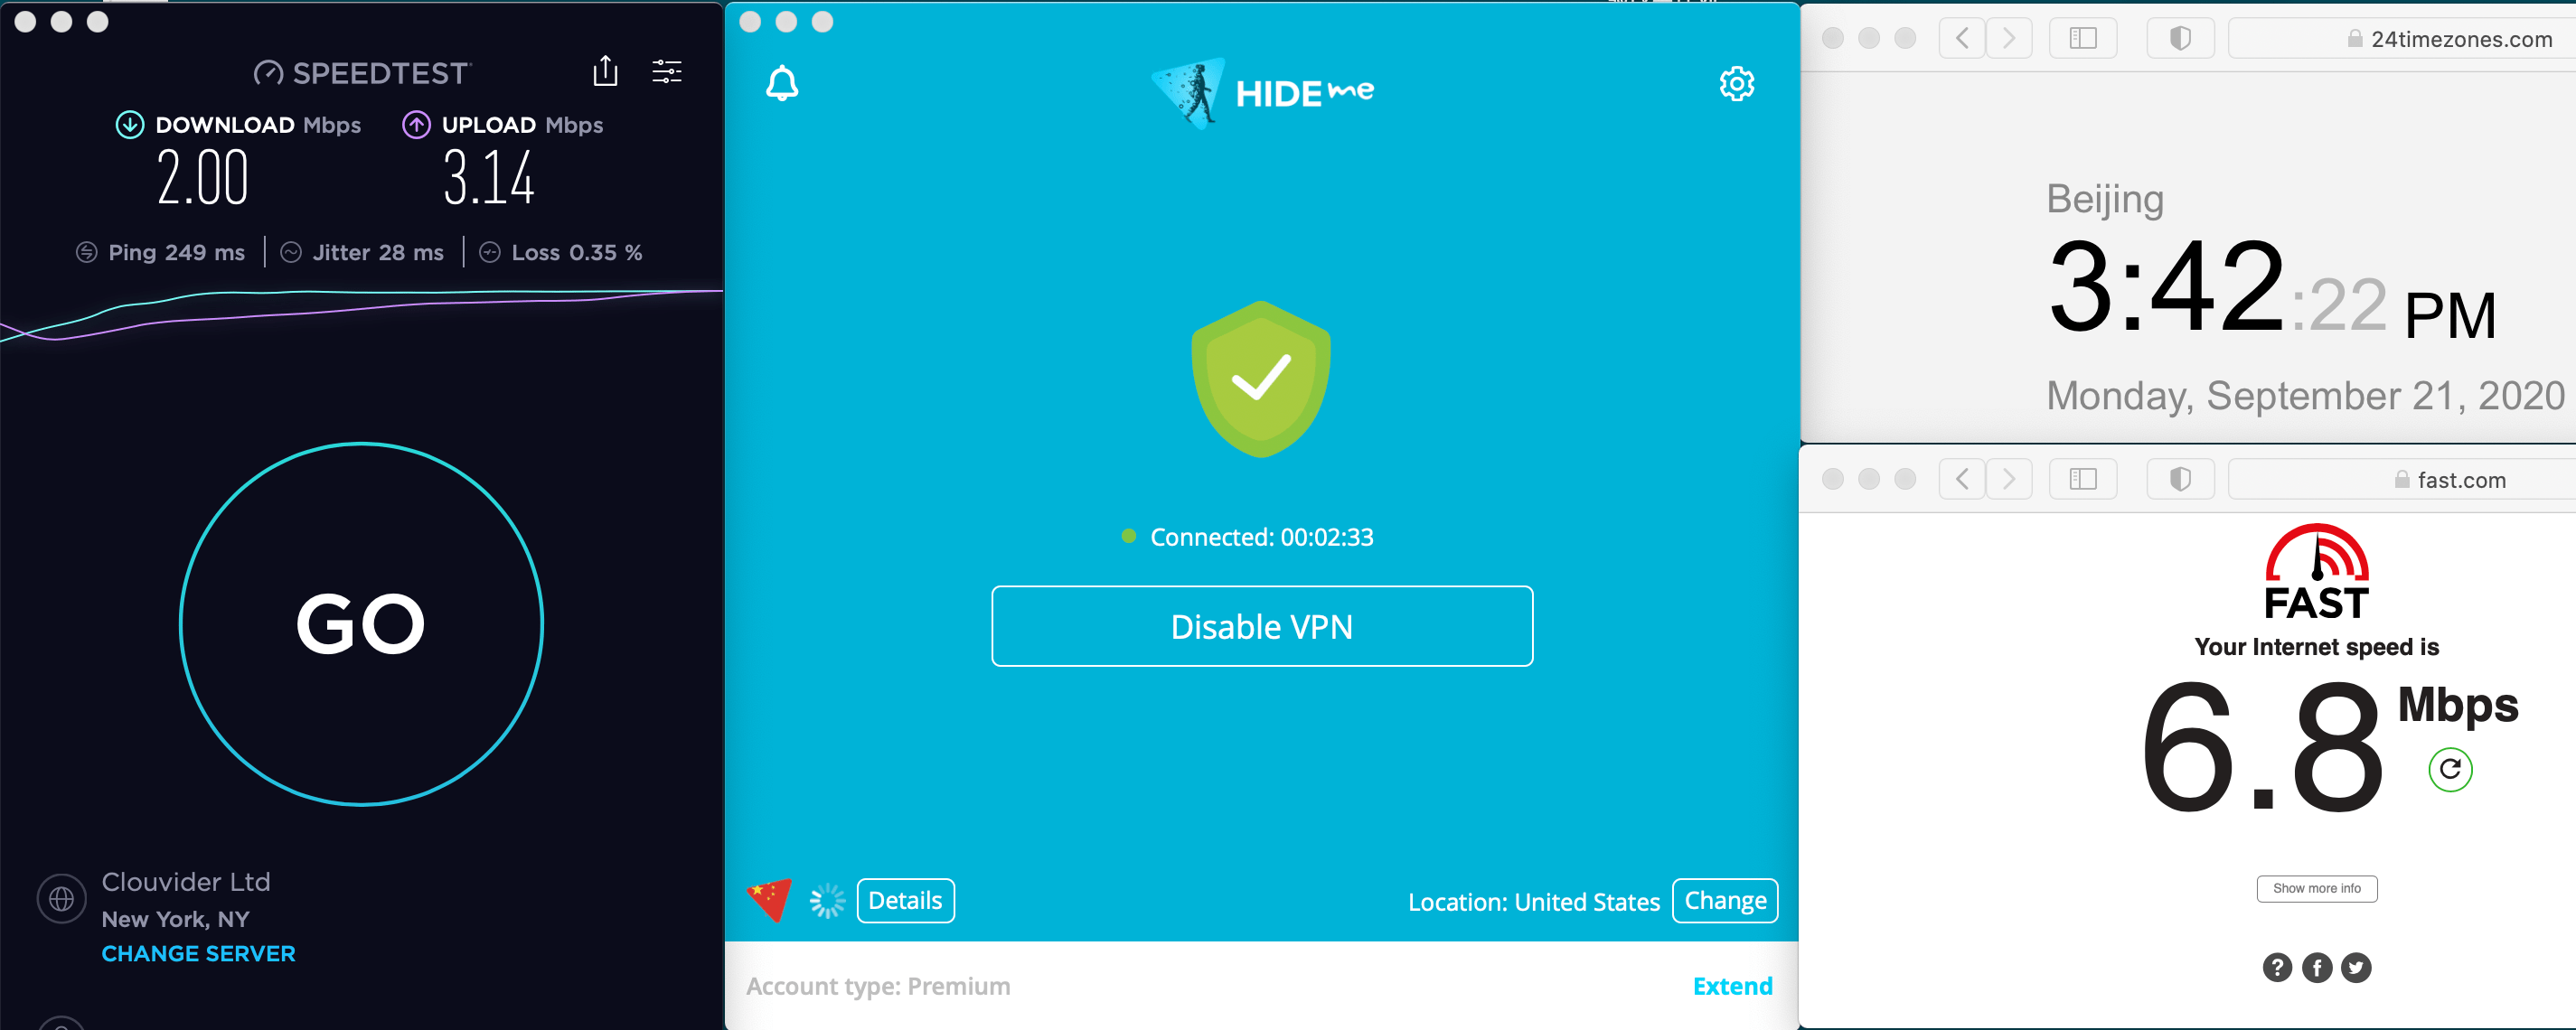 Macbook Hideme VPN Auto Streaming USA For EPSN 中国VPN 翻墙 科学上网 速度测试 2020-09-21 at 15.42.24